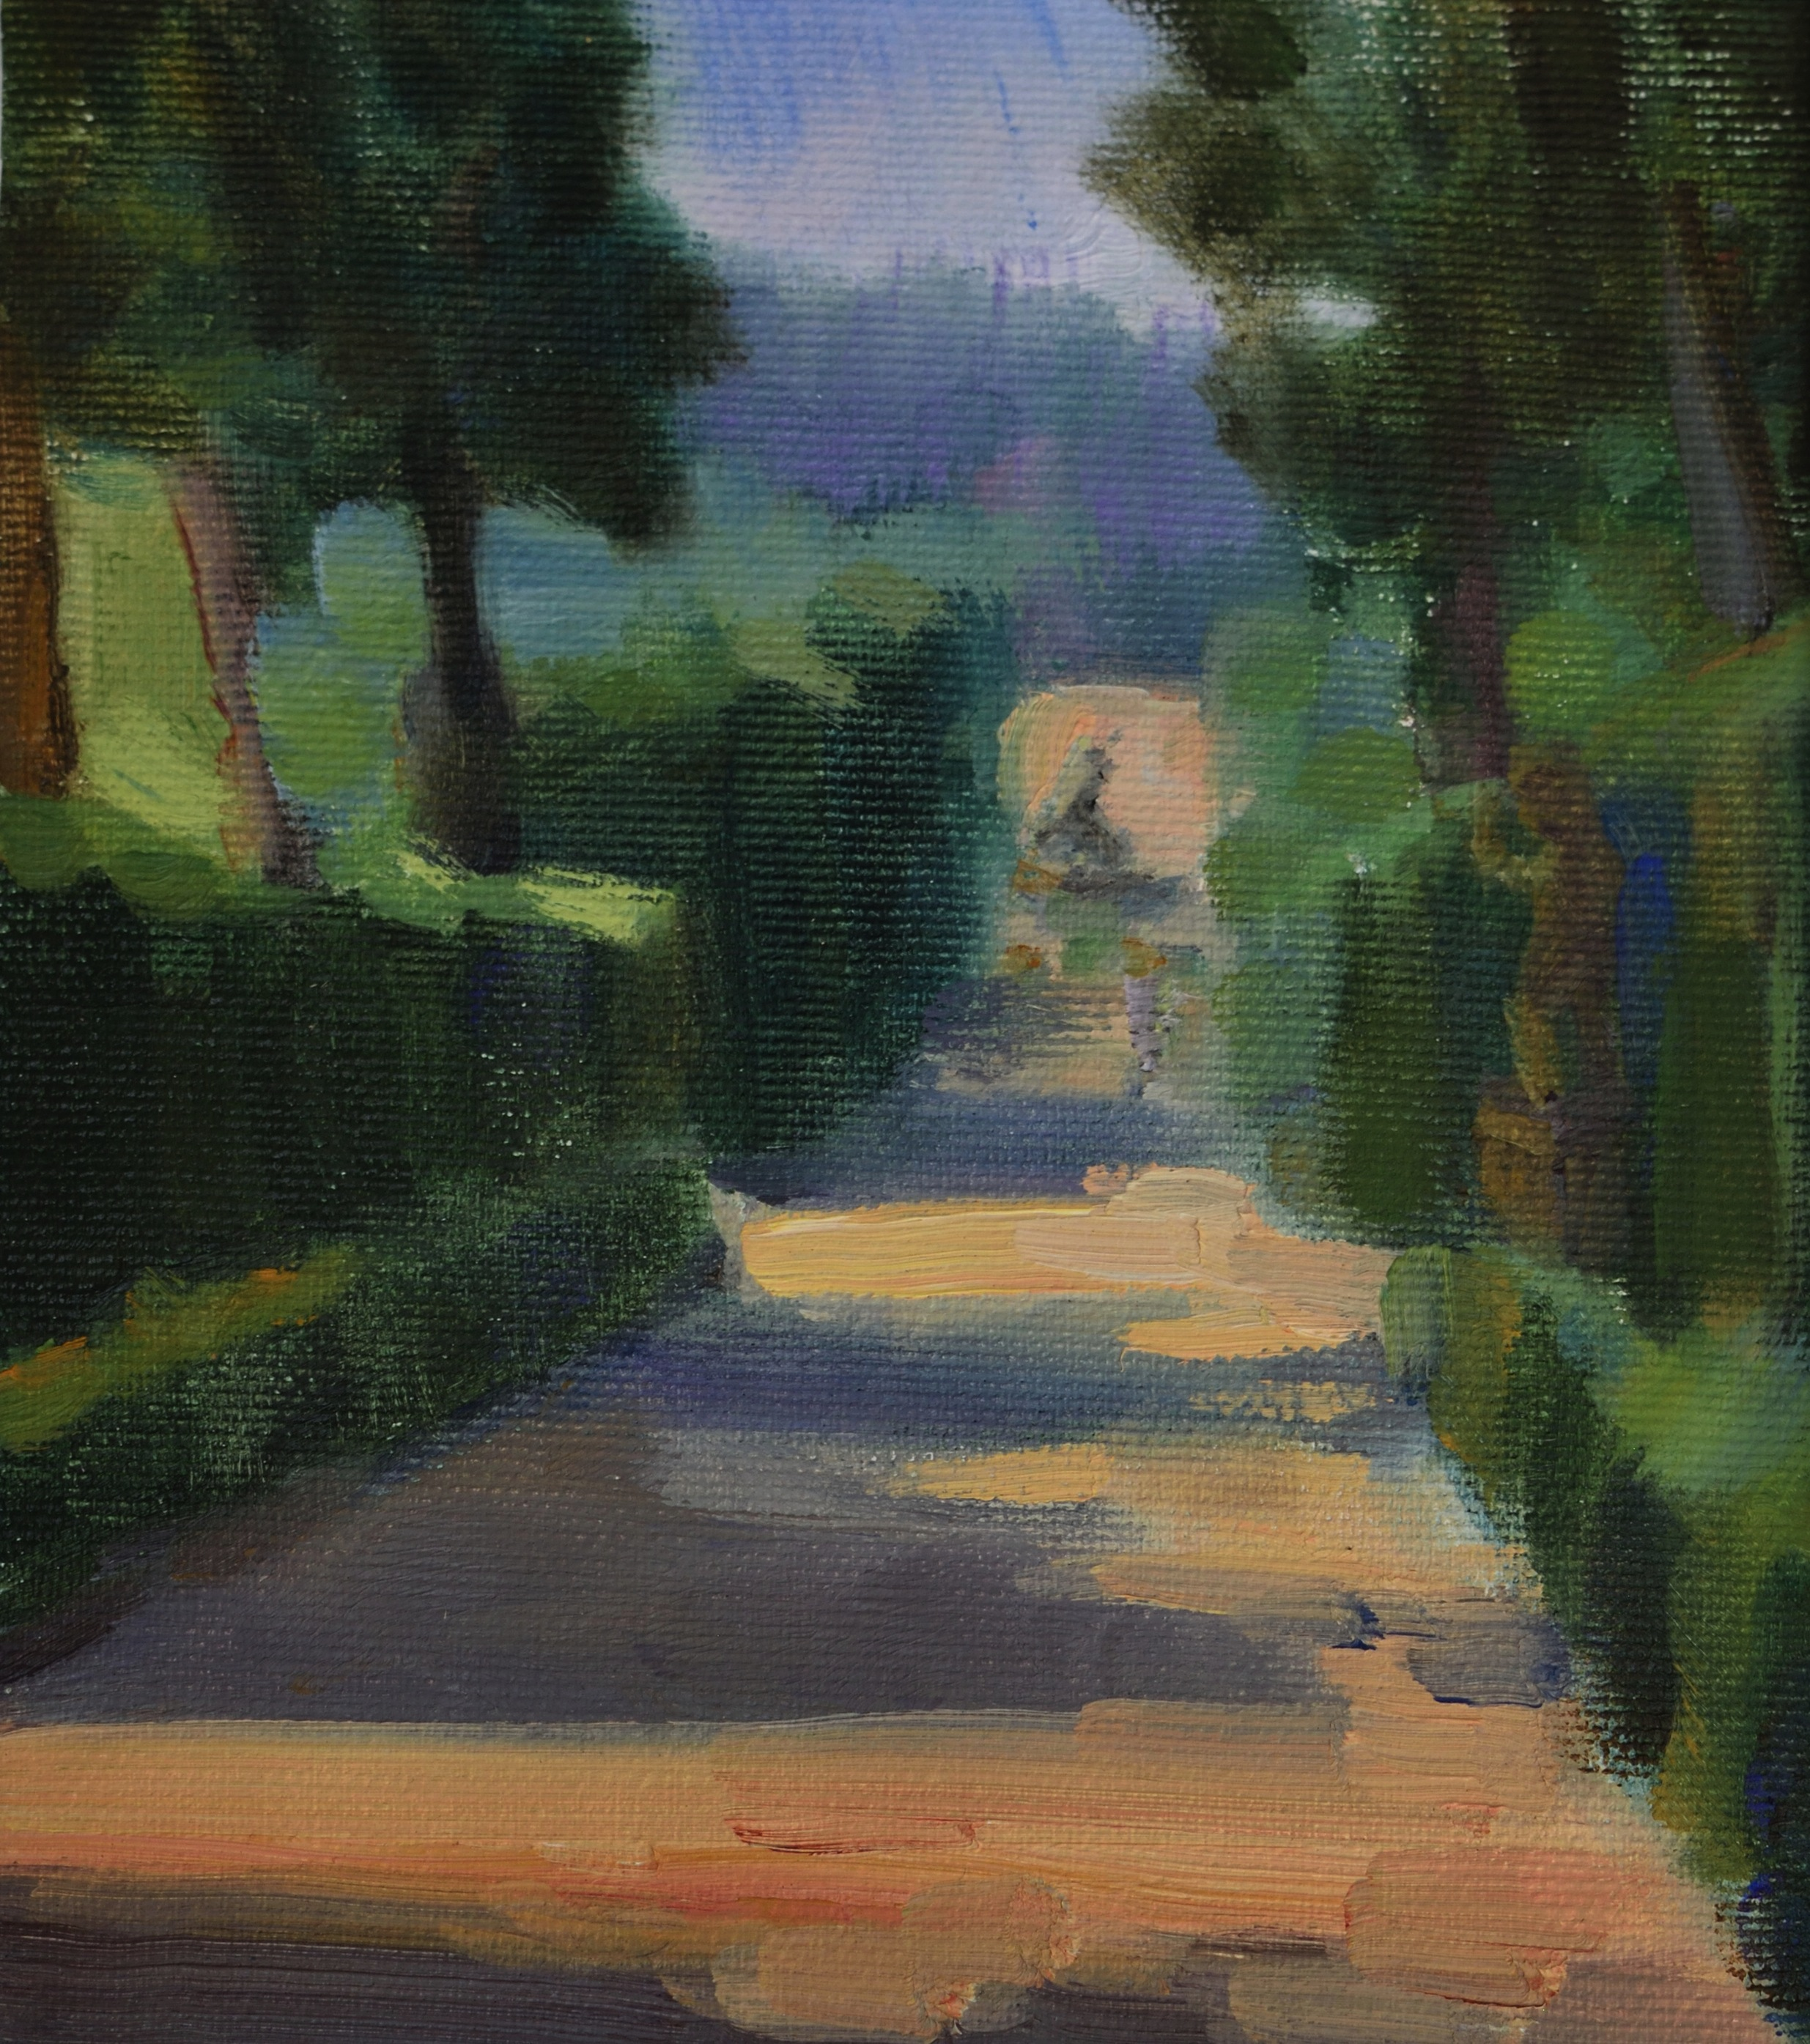 Viottolone di Boboli, oil on canvas, 17 x 15 cm, 2018